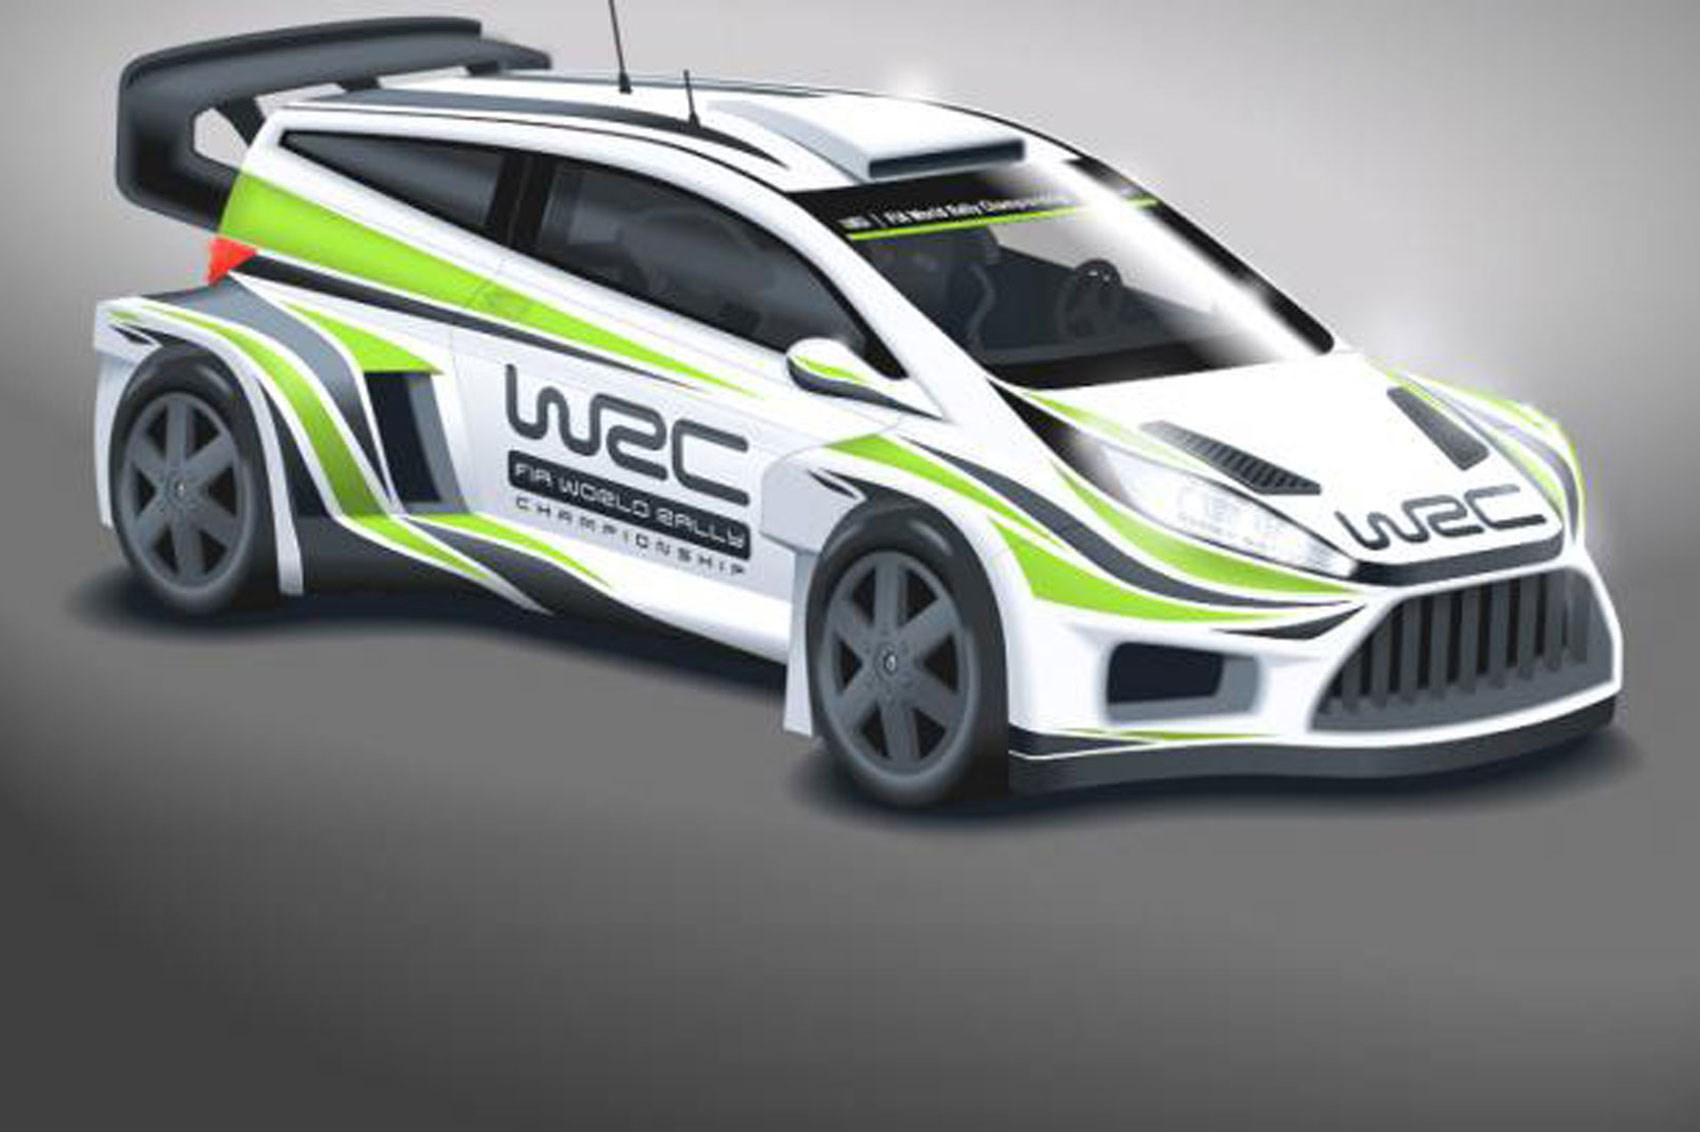 Ultrablogus  Personable Wild New Look For Wrc Cars In  By Car Magazine With Great Wrc Cars Will Get Wider Bodies Bigger Wings And More Power For  With Archaic Ford Fairlane Interior Also Saturn Interior In Addition Zx Interior Parts And Interior Bulb As Well As Box Chevy Interior Additionally Rsx Interior From Carmagazinecouk With Ultrablogus  Great Wild New Look For Wrc Cars In  By Car Magazine With Archaic Wrc Cars Will Get Wider Bodies Bigger Wings And More Power For  And Personable Ford Fairlane Interior Also Saturn Interior In Addition Zx Interior Parts From Carmagazinecouk